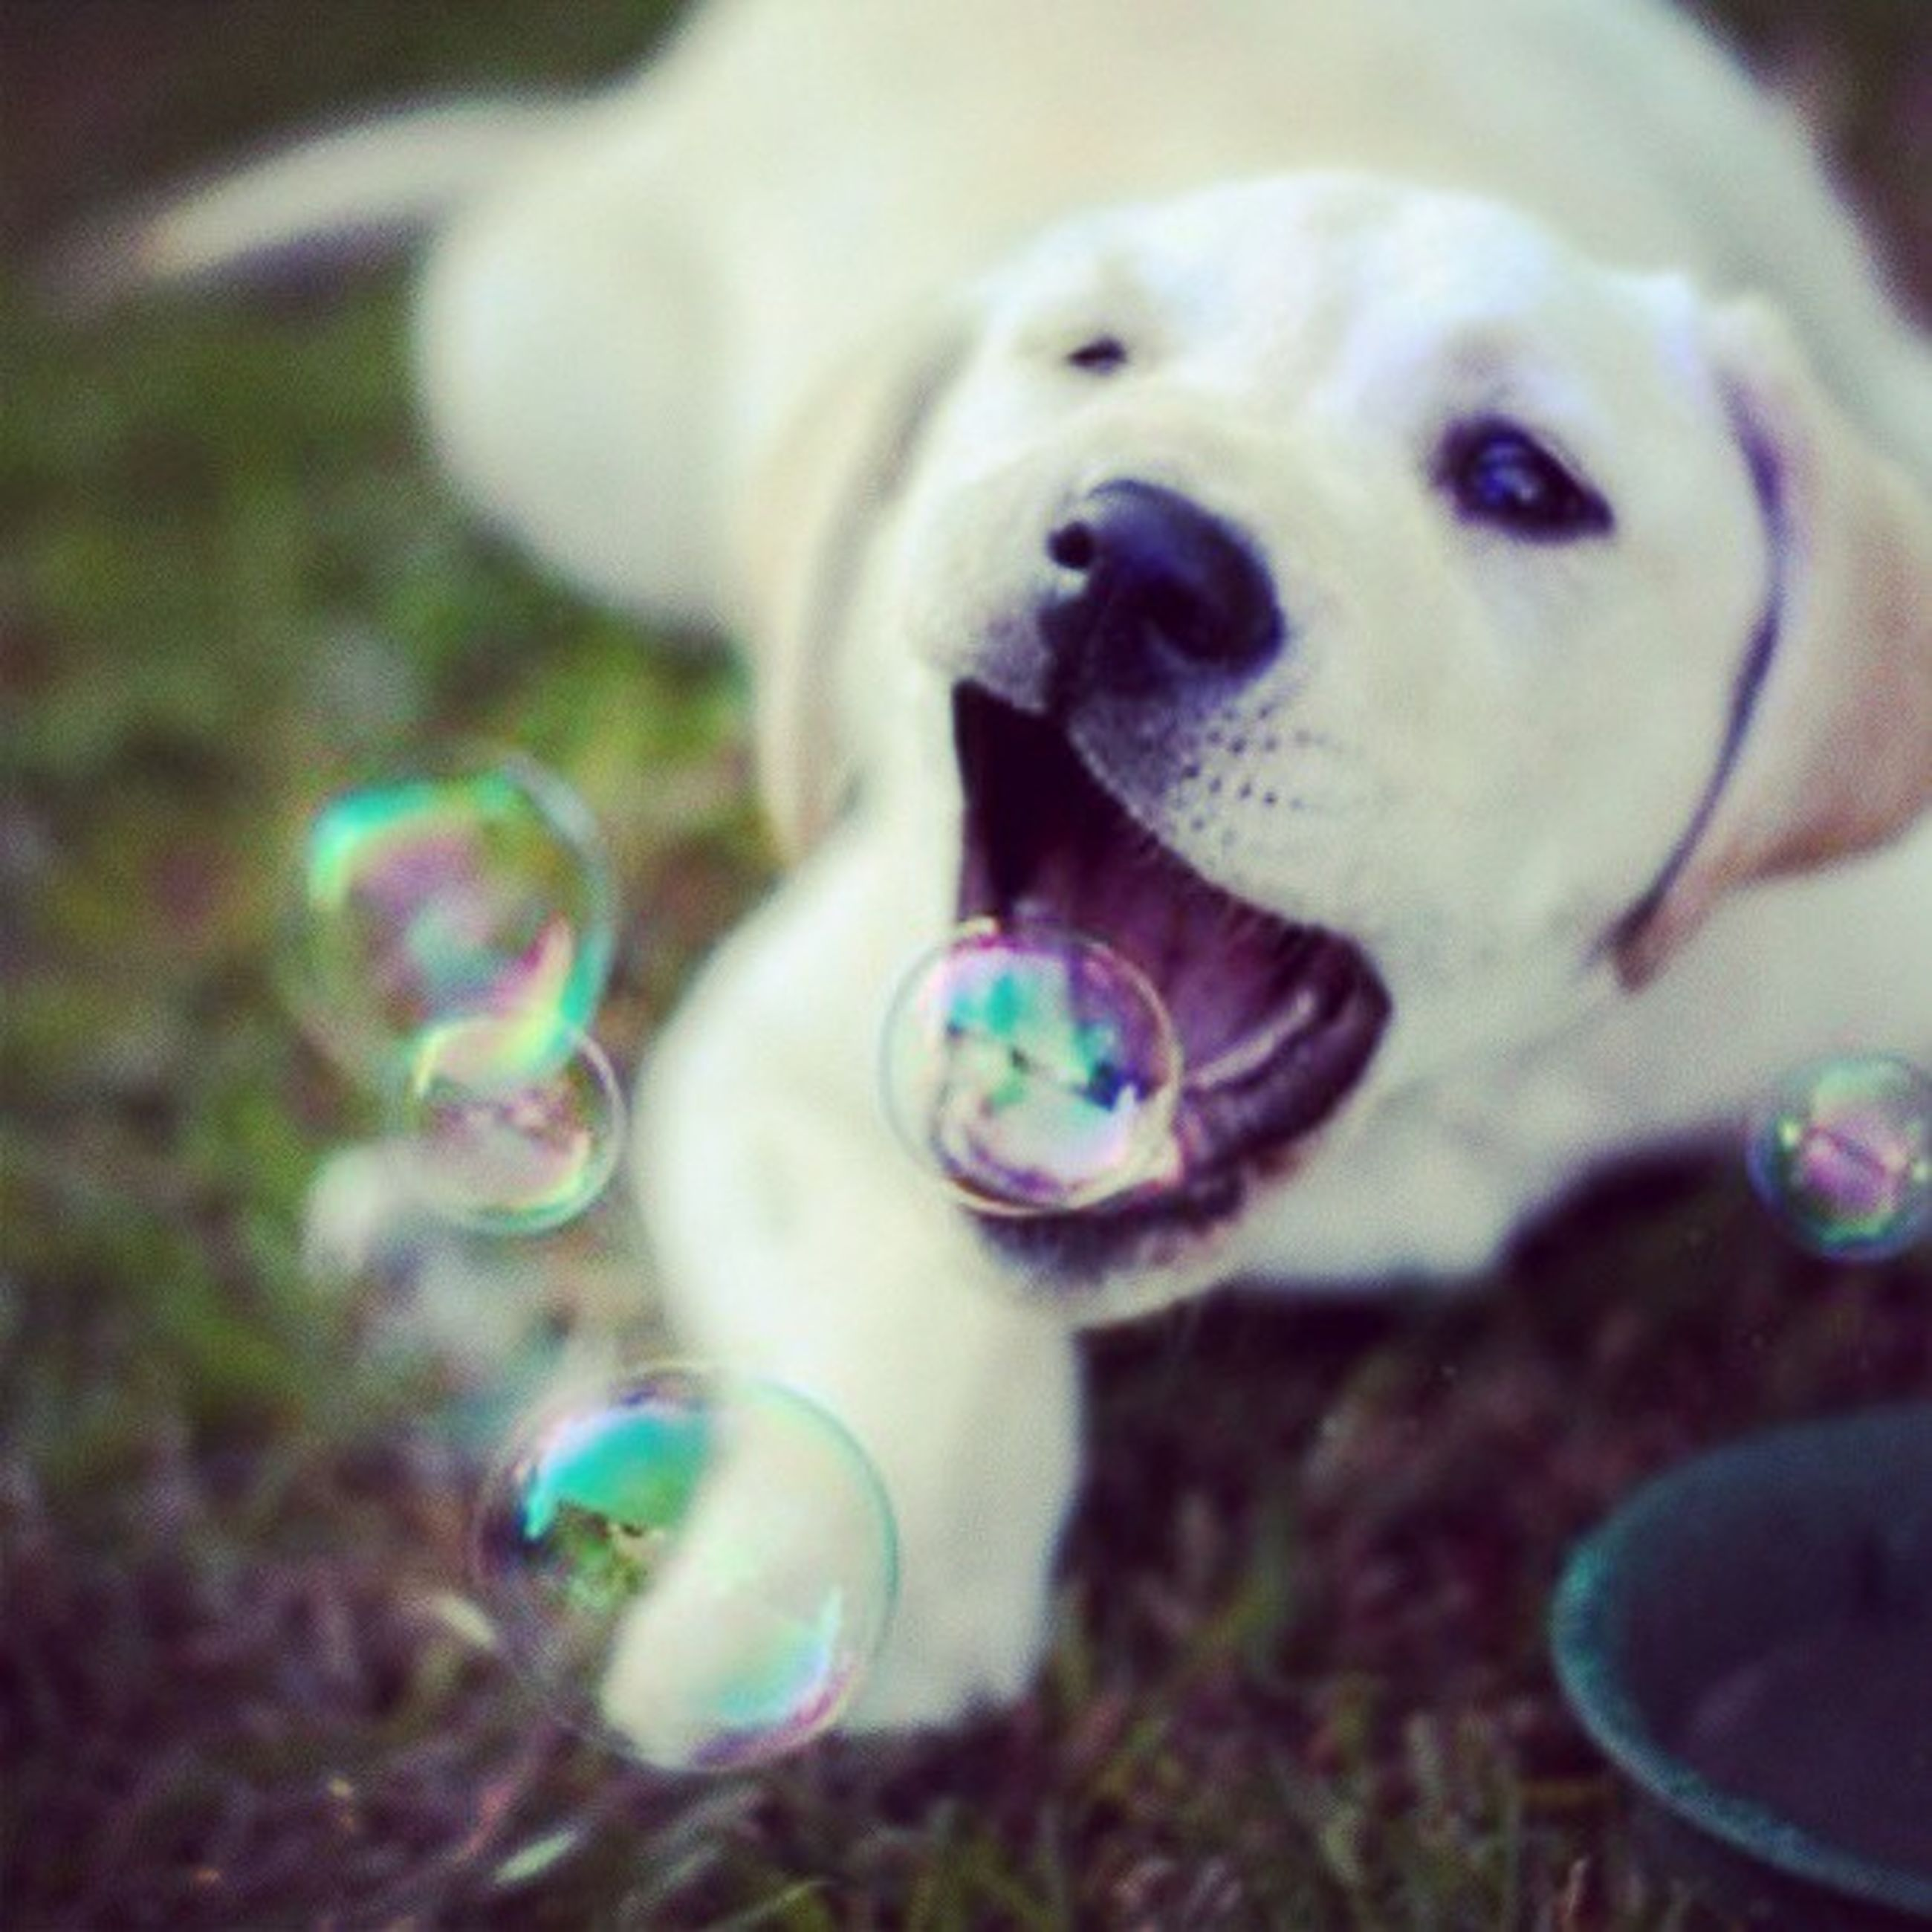 dog, pets, close-up, focus on foreground, domestic animals, looking at camera, indoors, animal themes, portrait, one animal, toy, no people, selective focus, freshness, cute, day, flower, childhood, field, ball